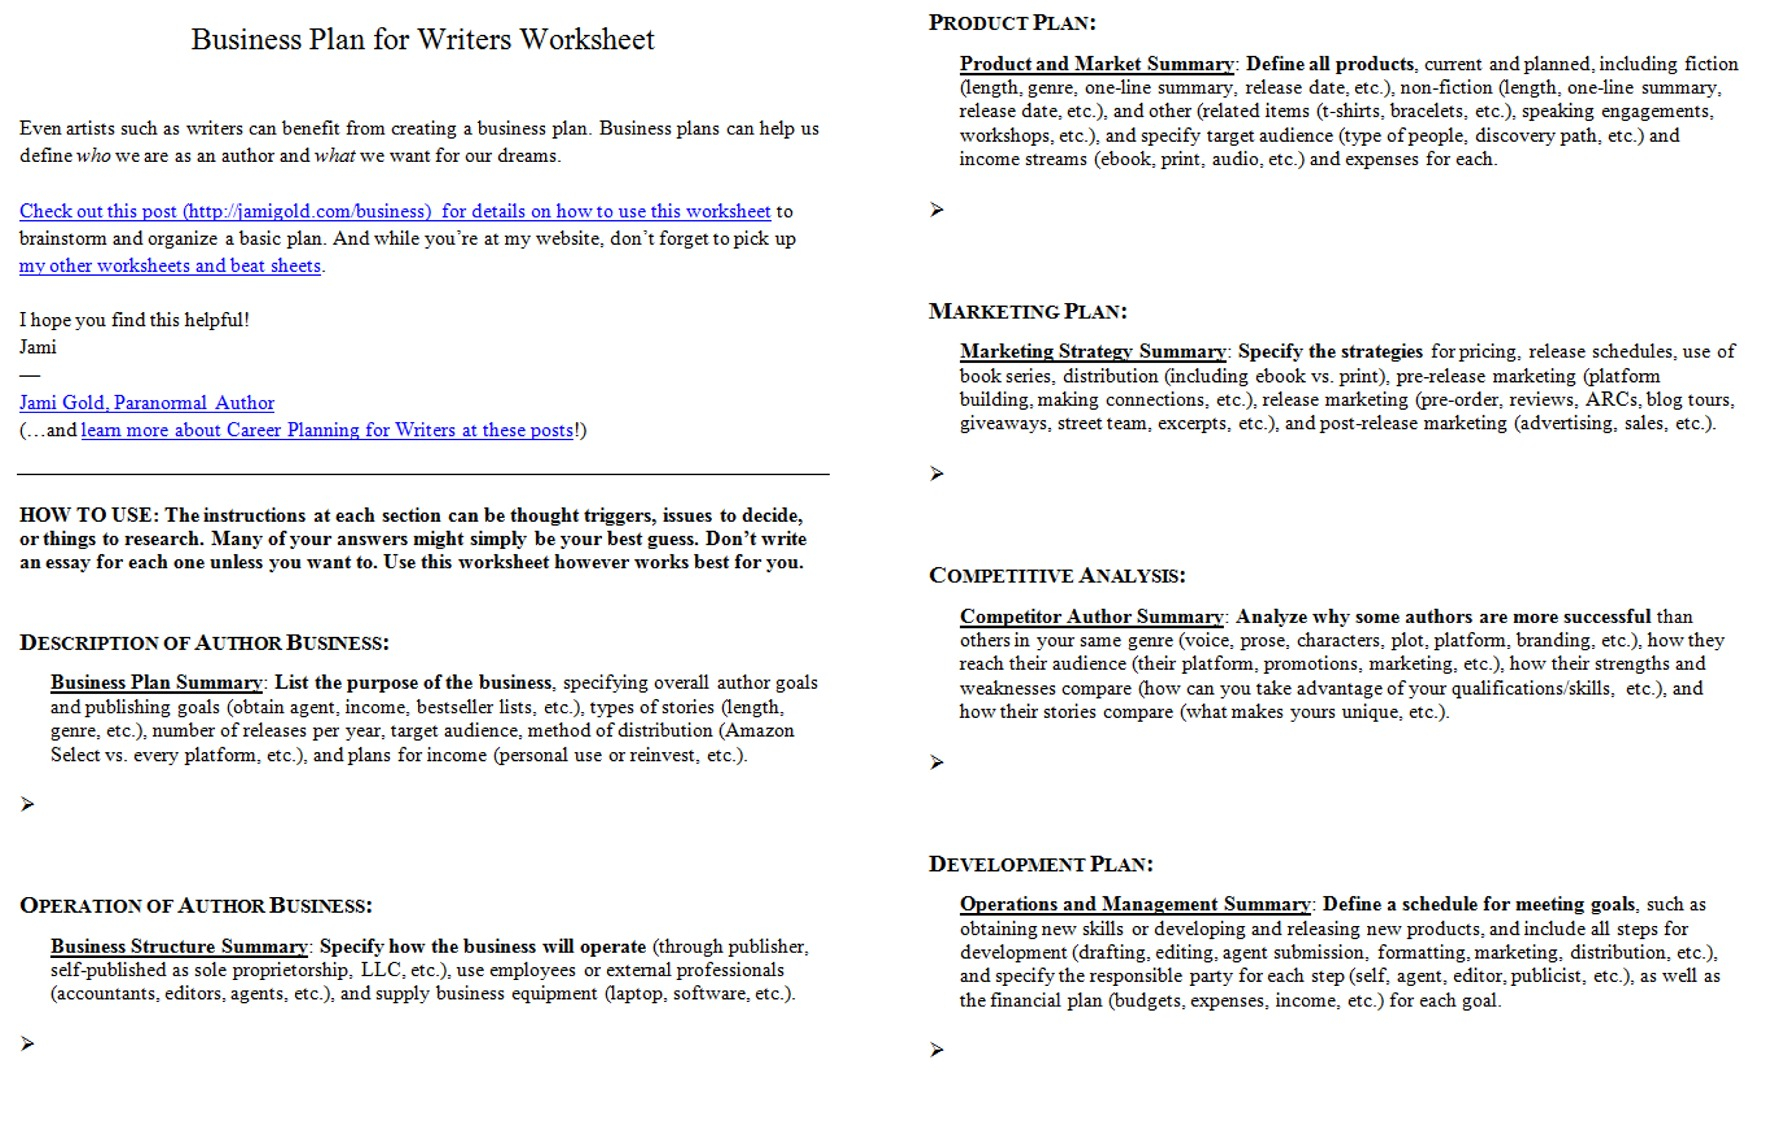 Introducing the Business Plan for Writers Worksheet! | Jami